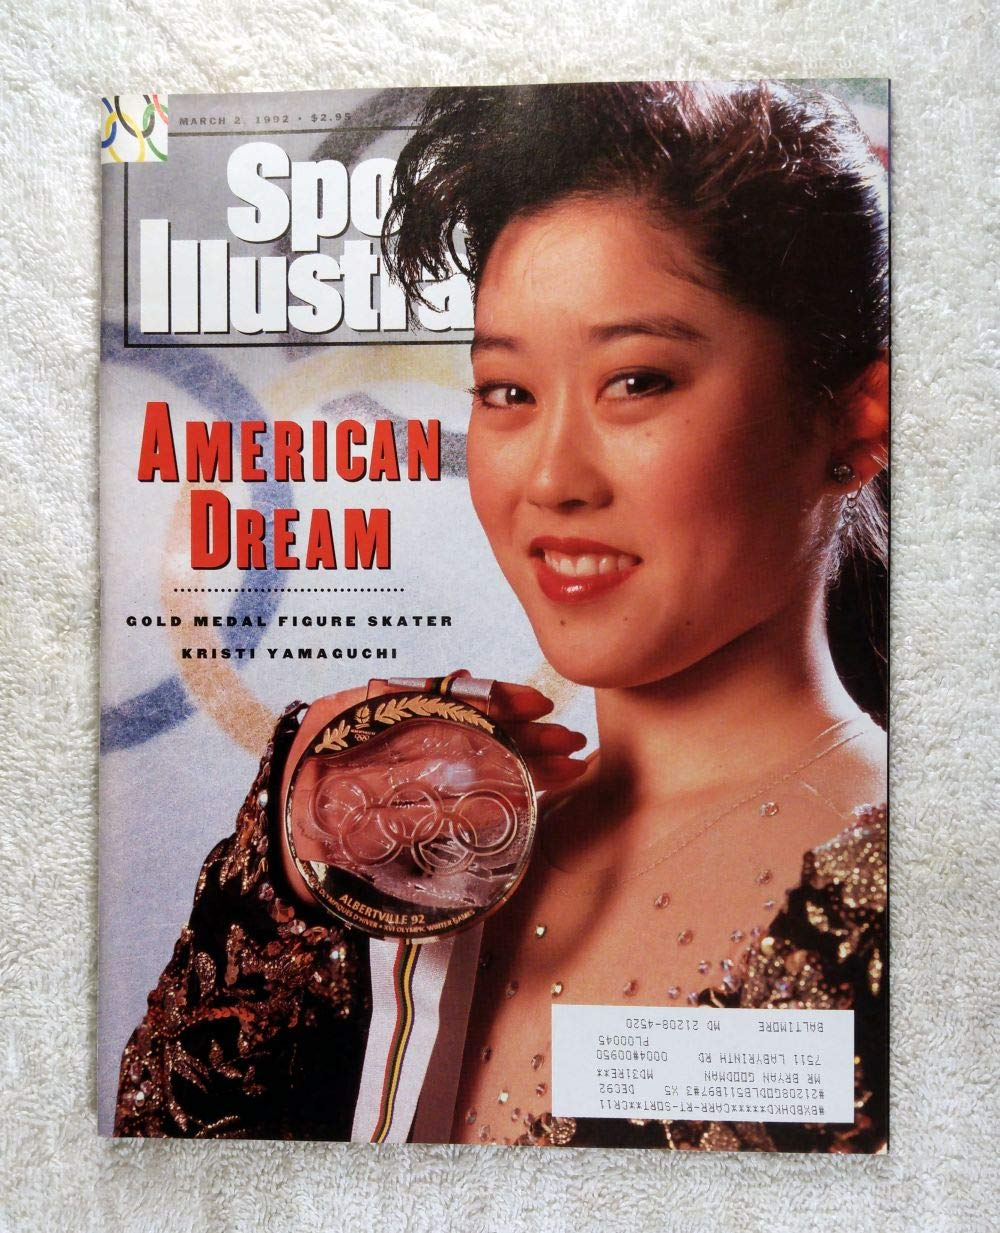 c8617a714a52 Kristi Yamaguchi - Gold Medal Winner - Figure Skating - Sports Illustrated  - March 2